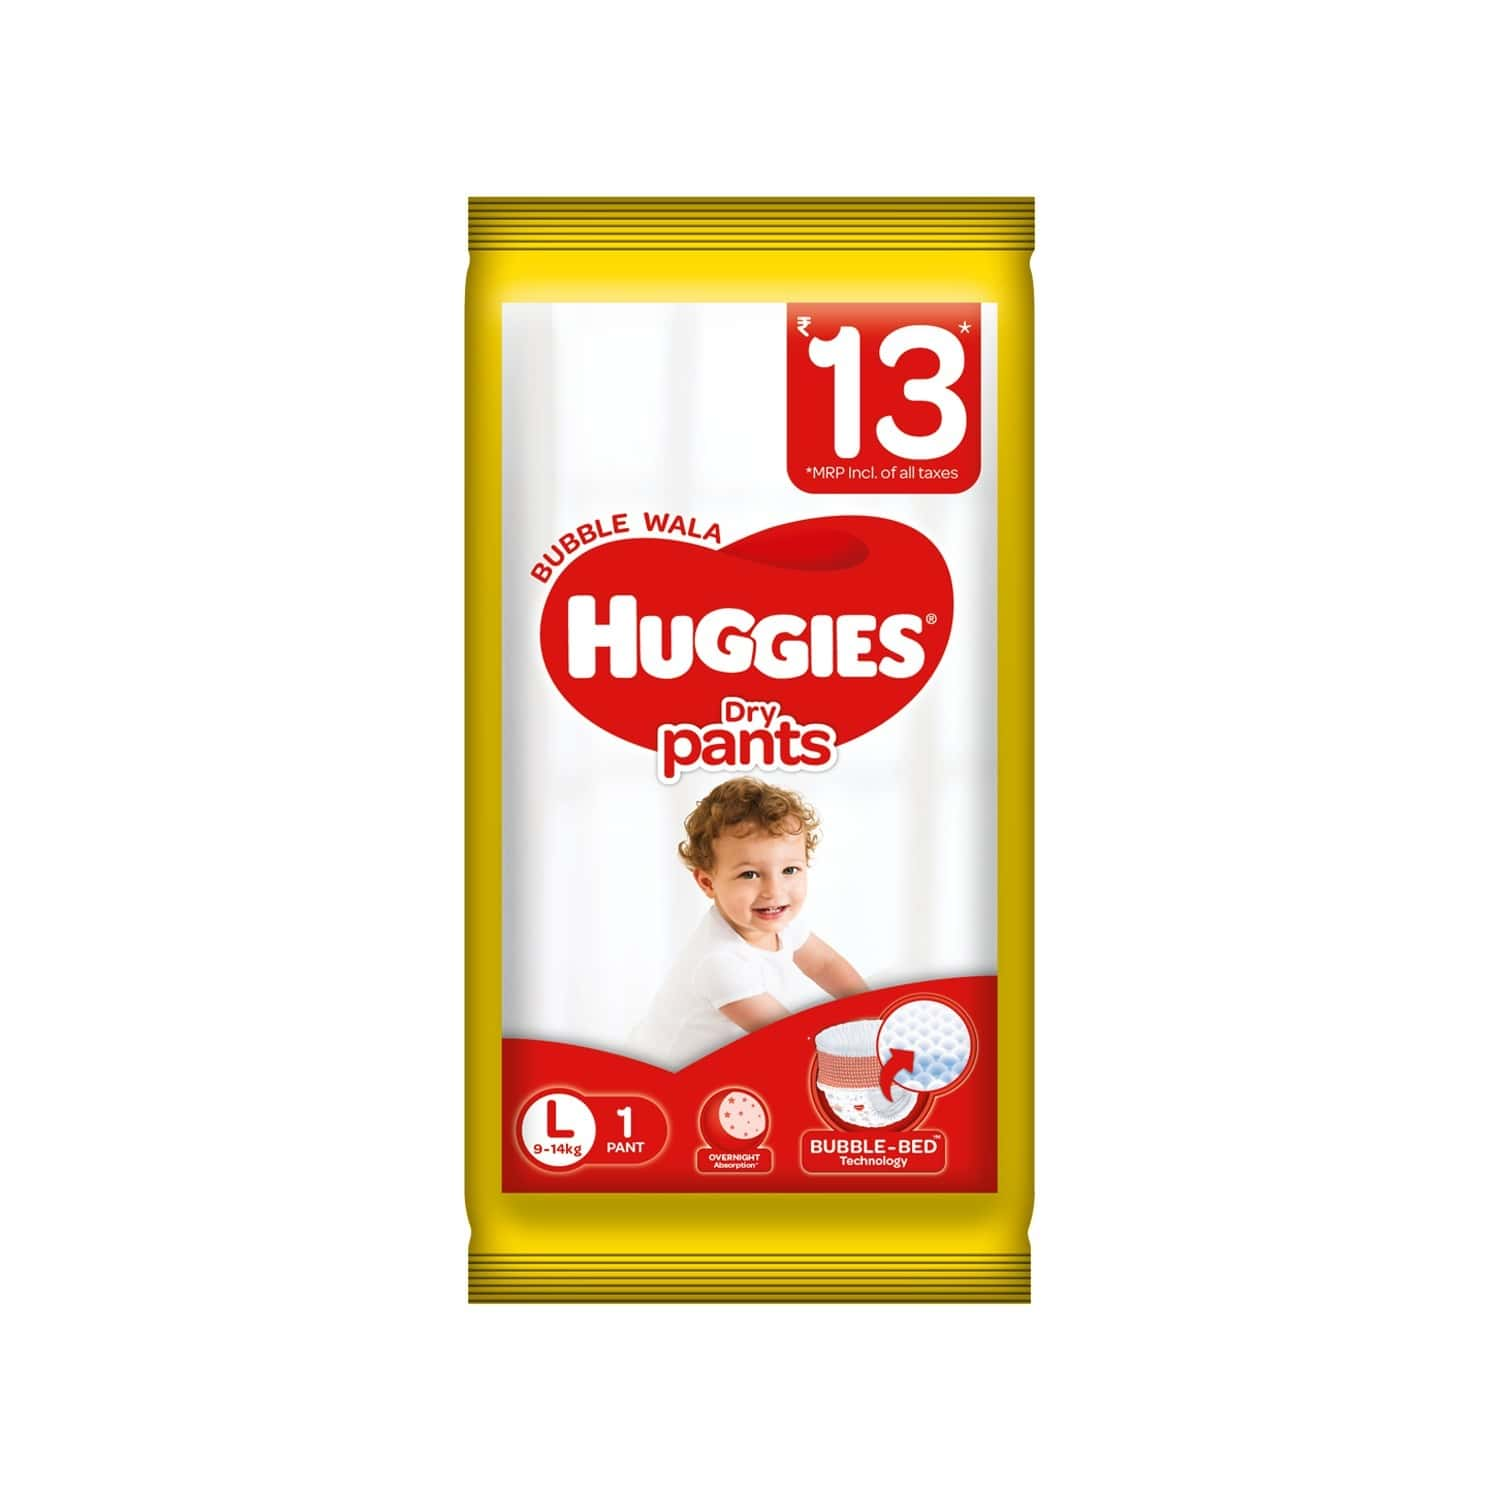 Huggies Dry Pants Diapers ( Large Size) - 1 Count